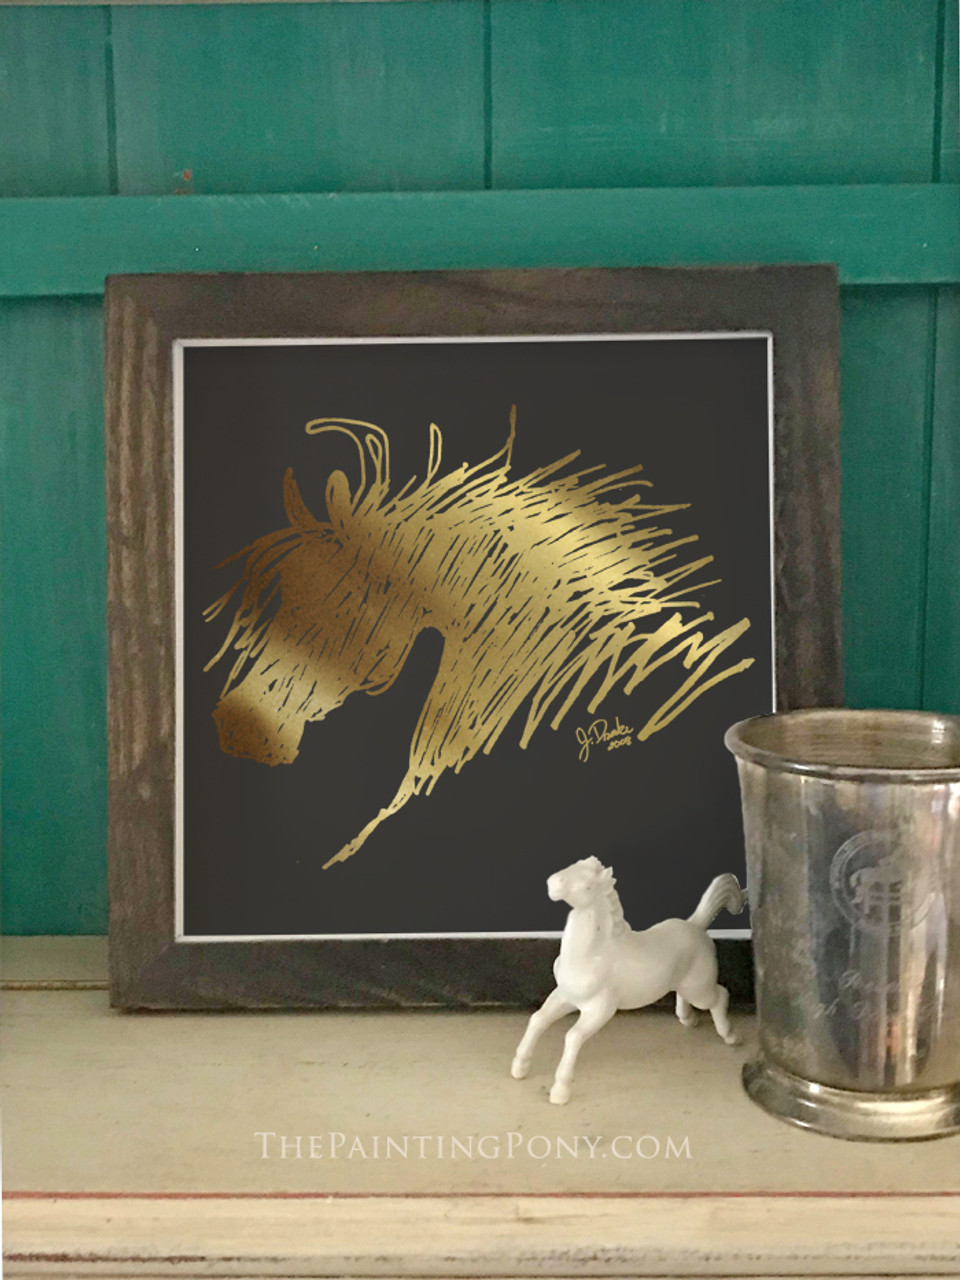 Metallic Gold Foil Abstract Horse Head Art Print The Painting Pony